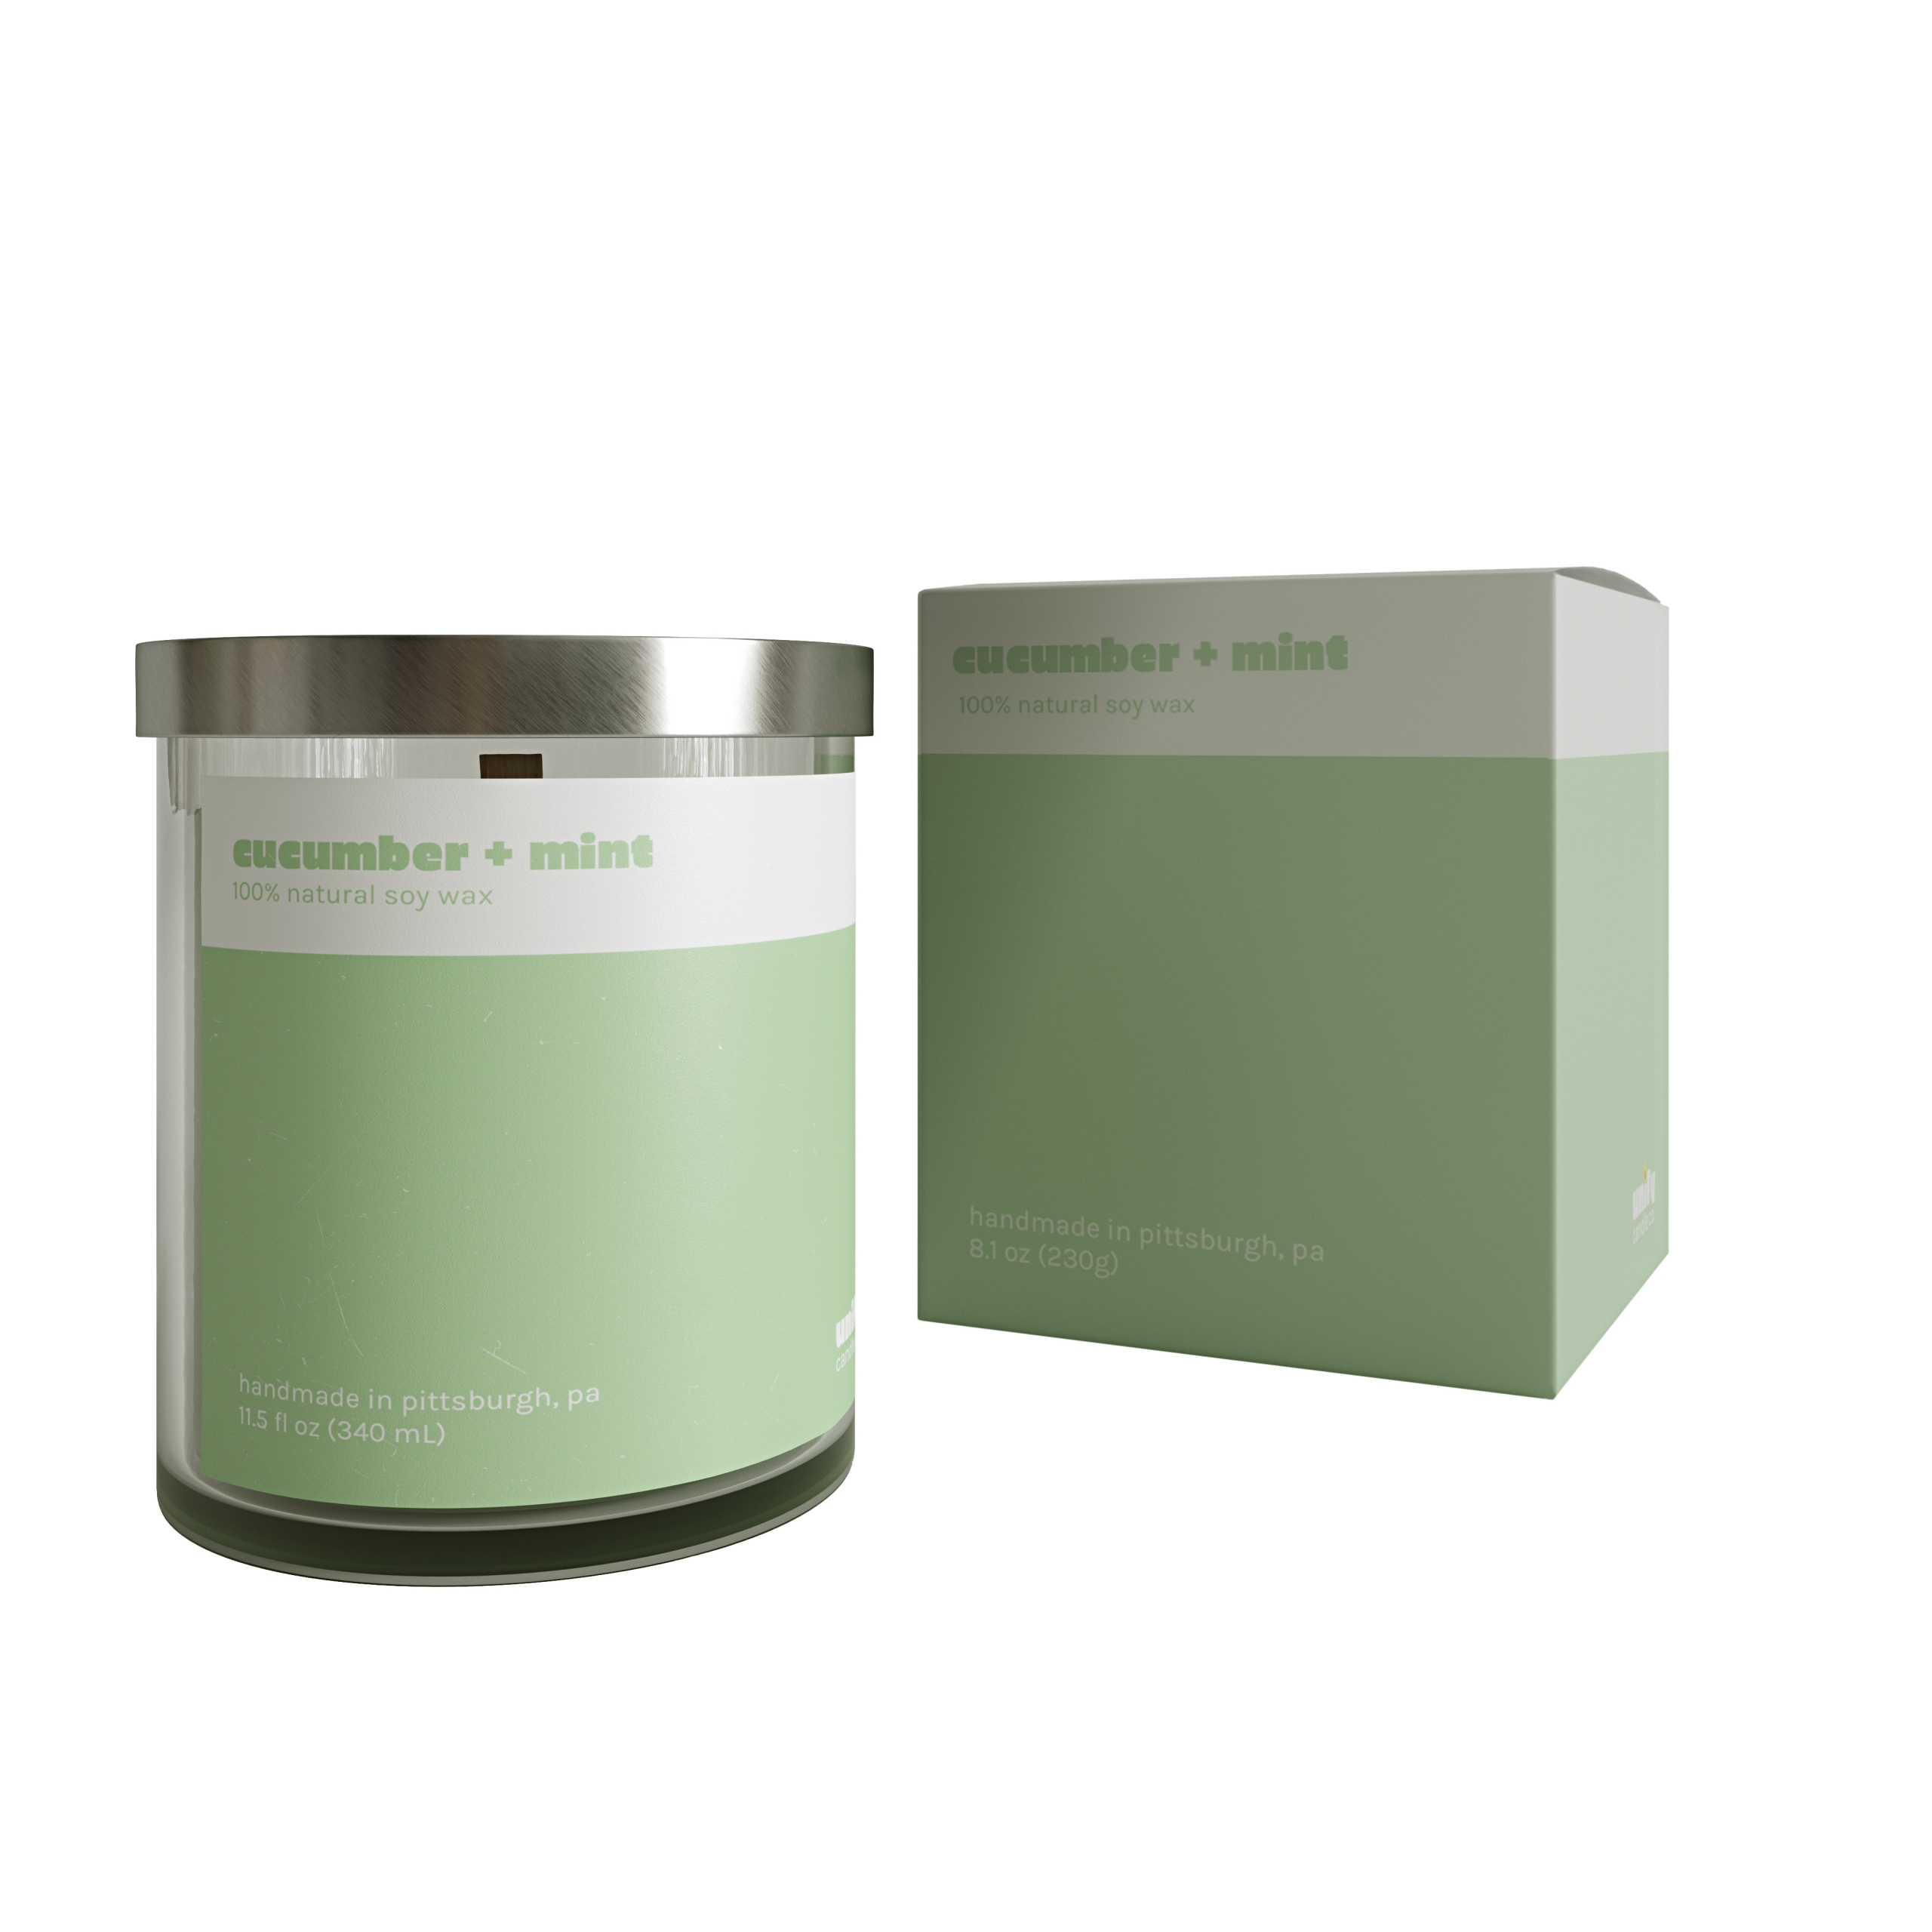 White Background Picture for a Cucumber + Mint Candle